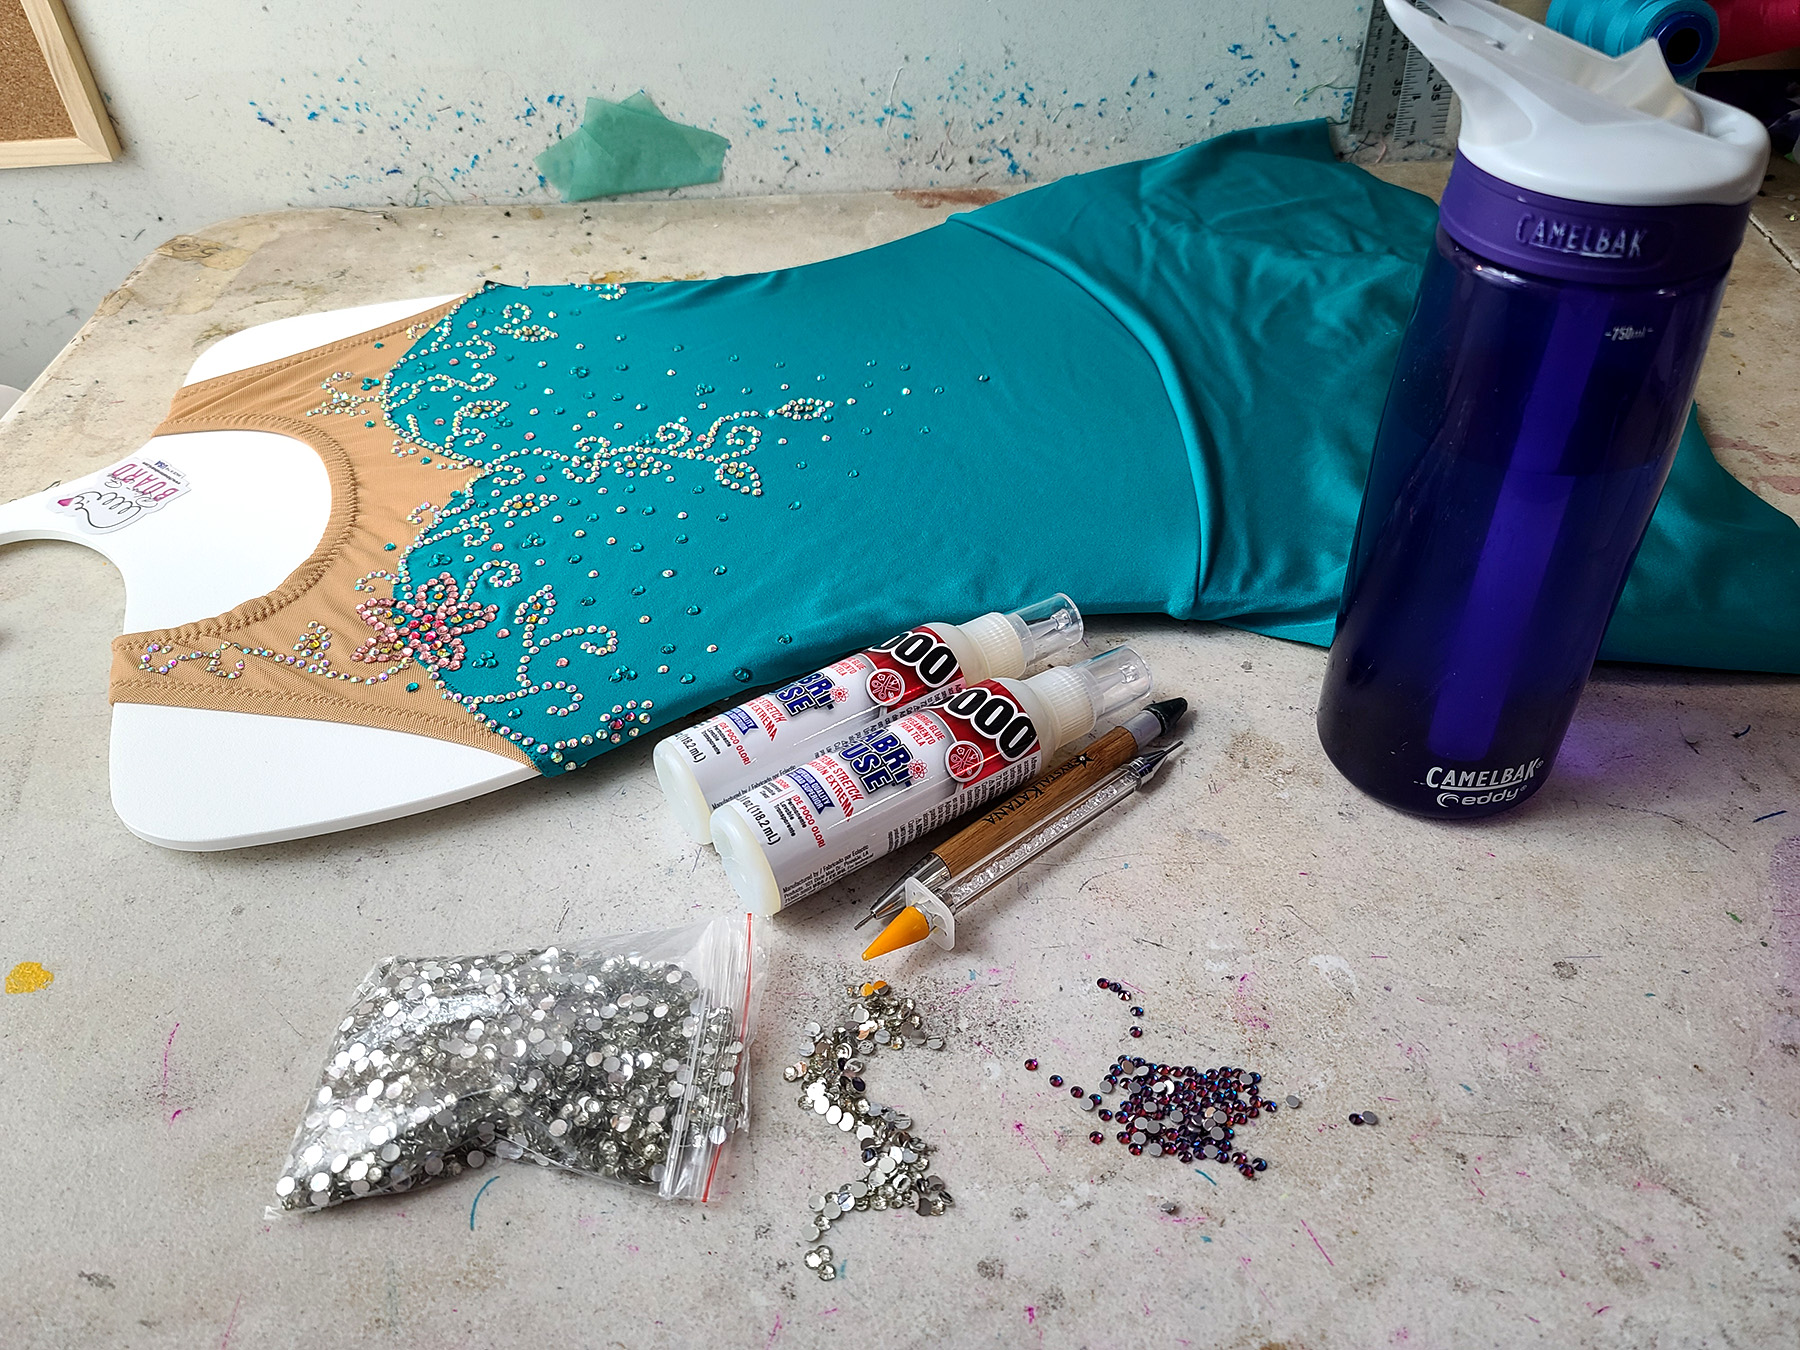 A teal skating dress on a Rhino-Stone board, several bottles of E-6000 Fabri-Fuse, crystals, and a water bottle are groups together on a work surface.